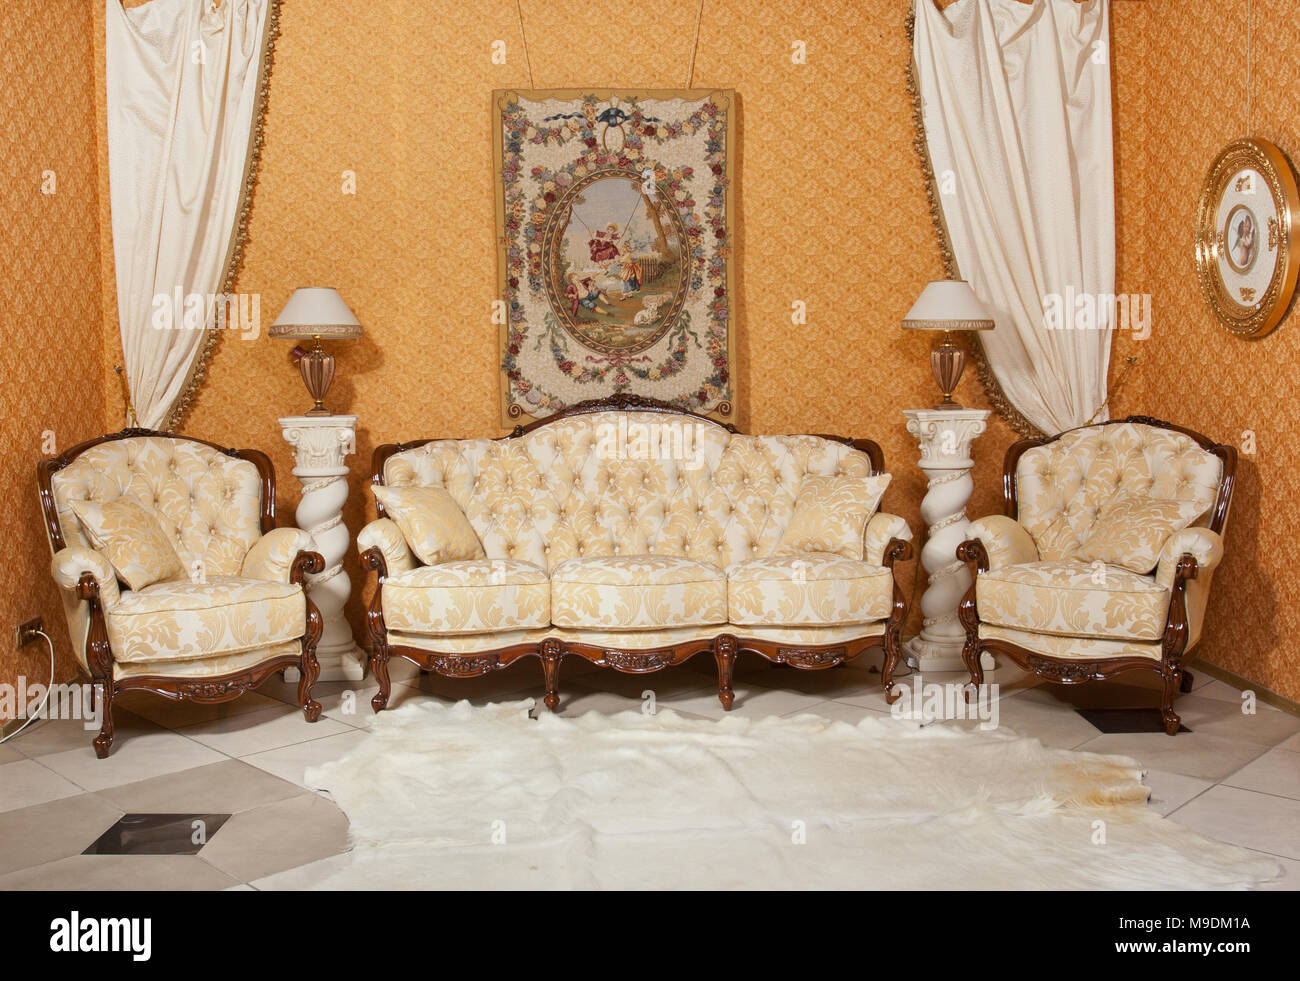 Empty interior living room background in warm colors decorated with classic furniture sofa and chairs